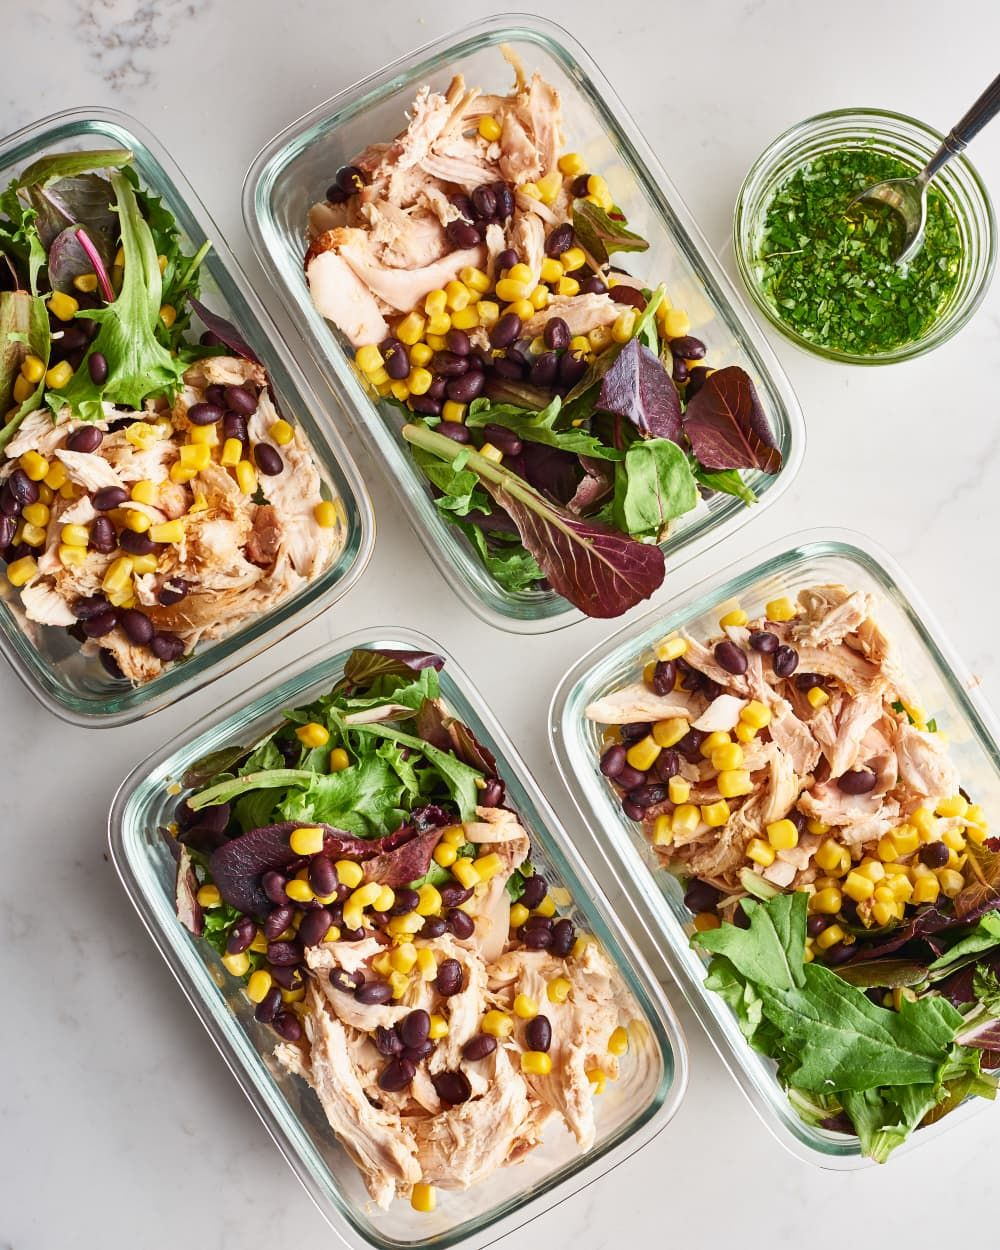 Meal Prep Plan How I Prep a Week of Costco Meals in Less